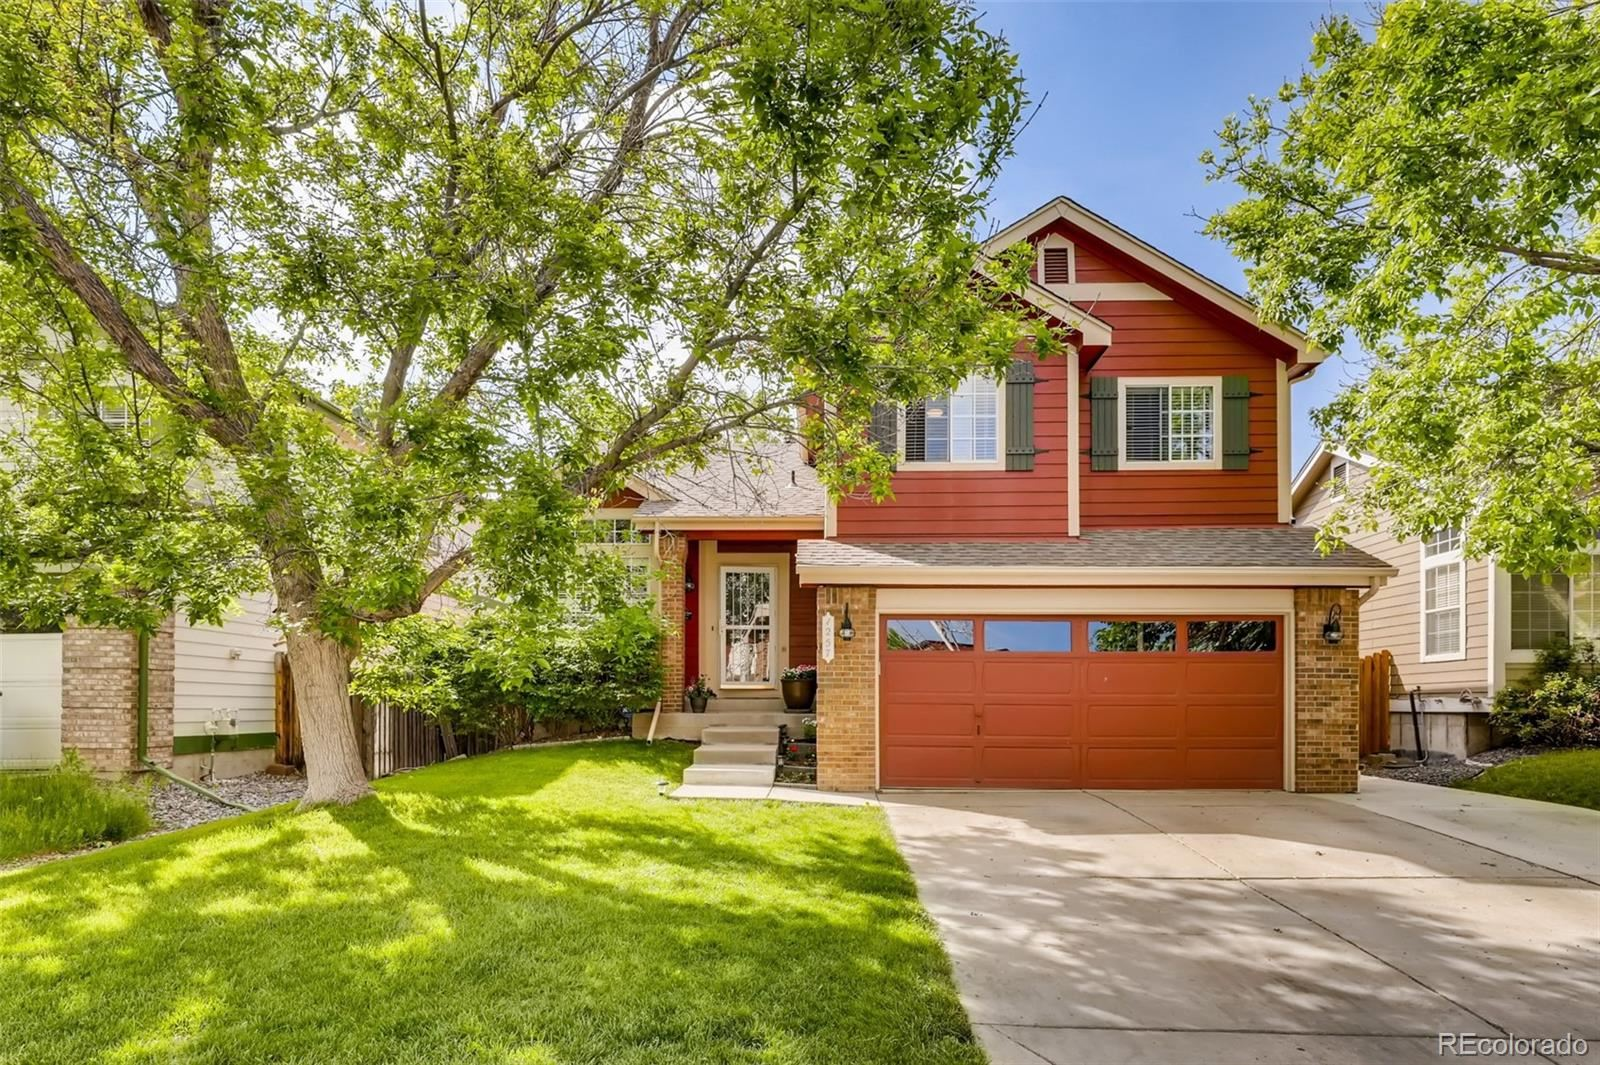 1257 W 133rd Way, Westminster, CO 80234 - #: 2162874